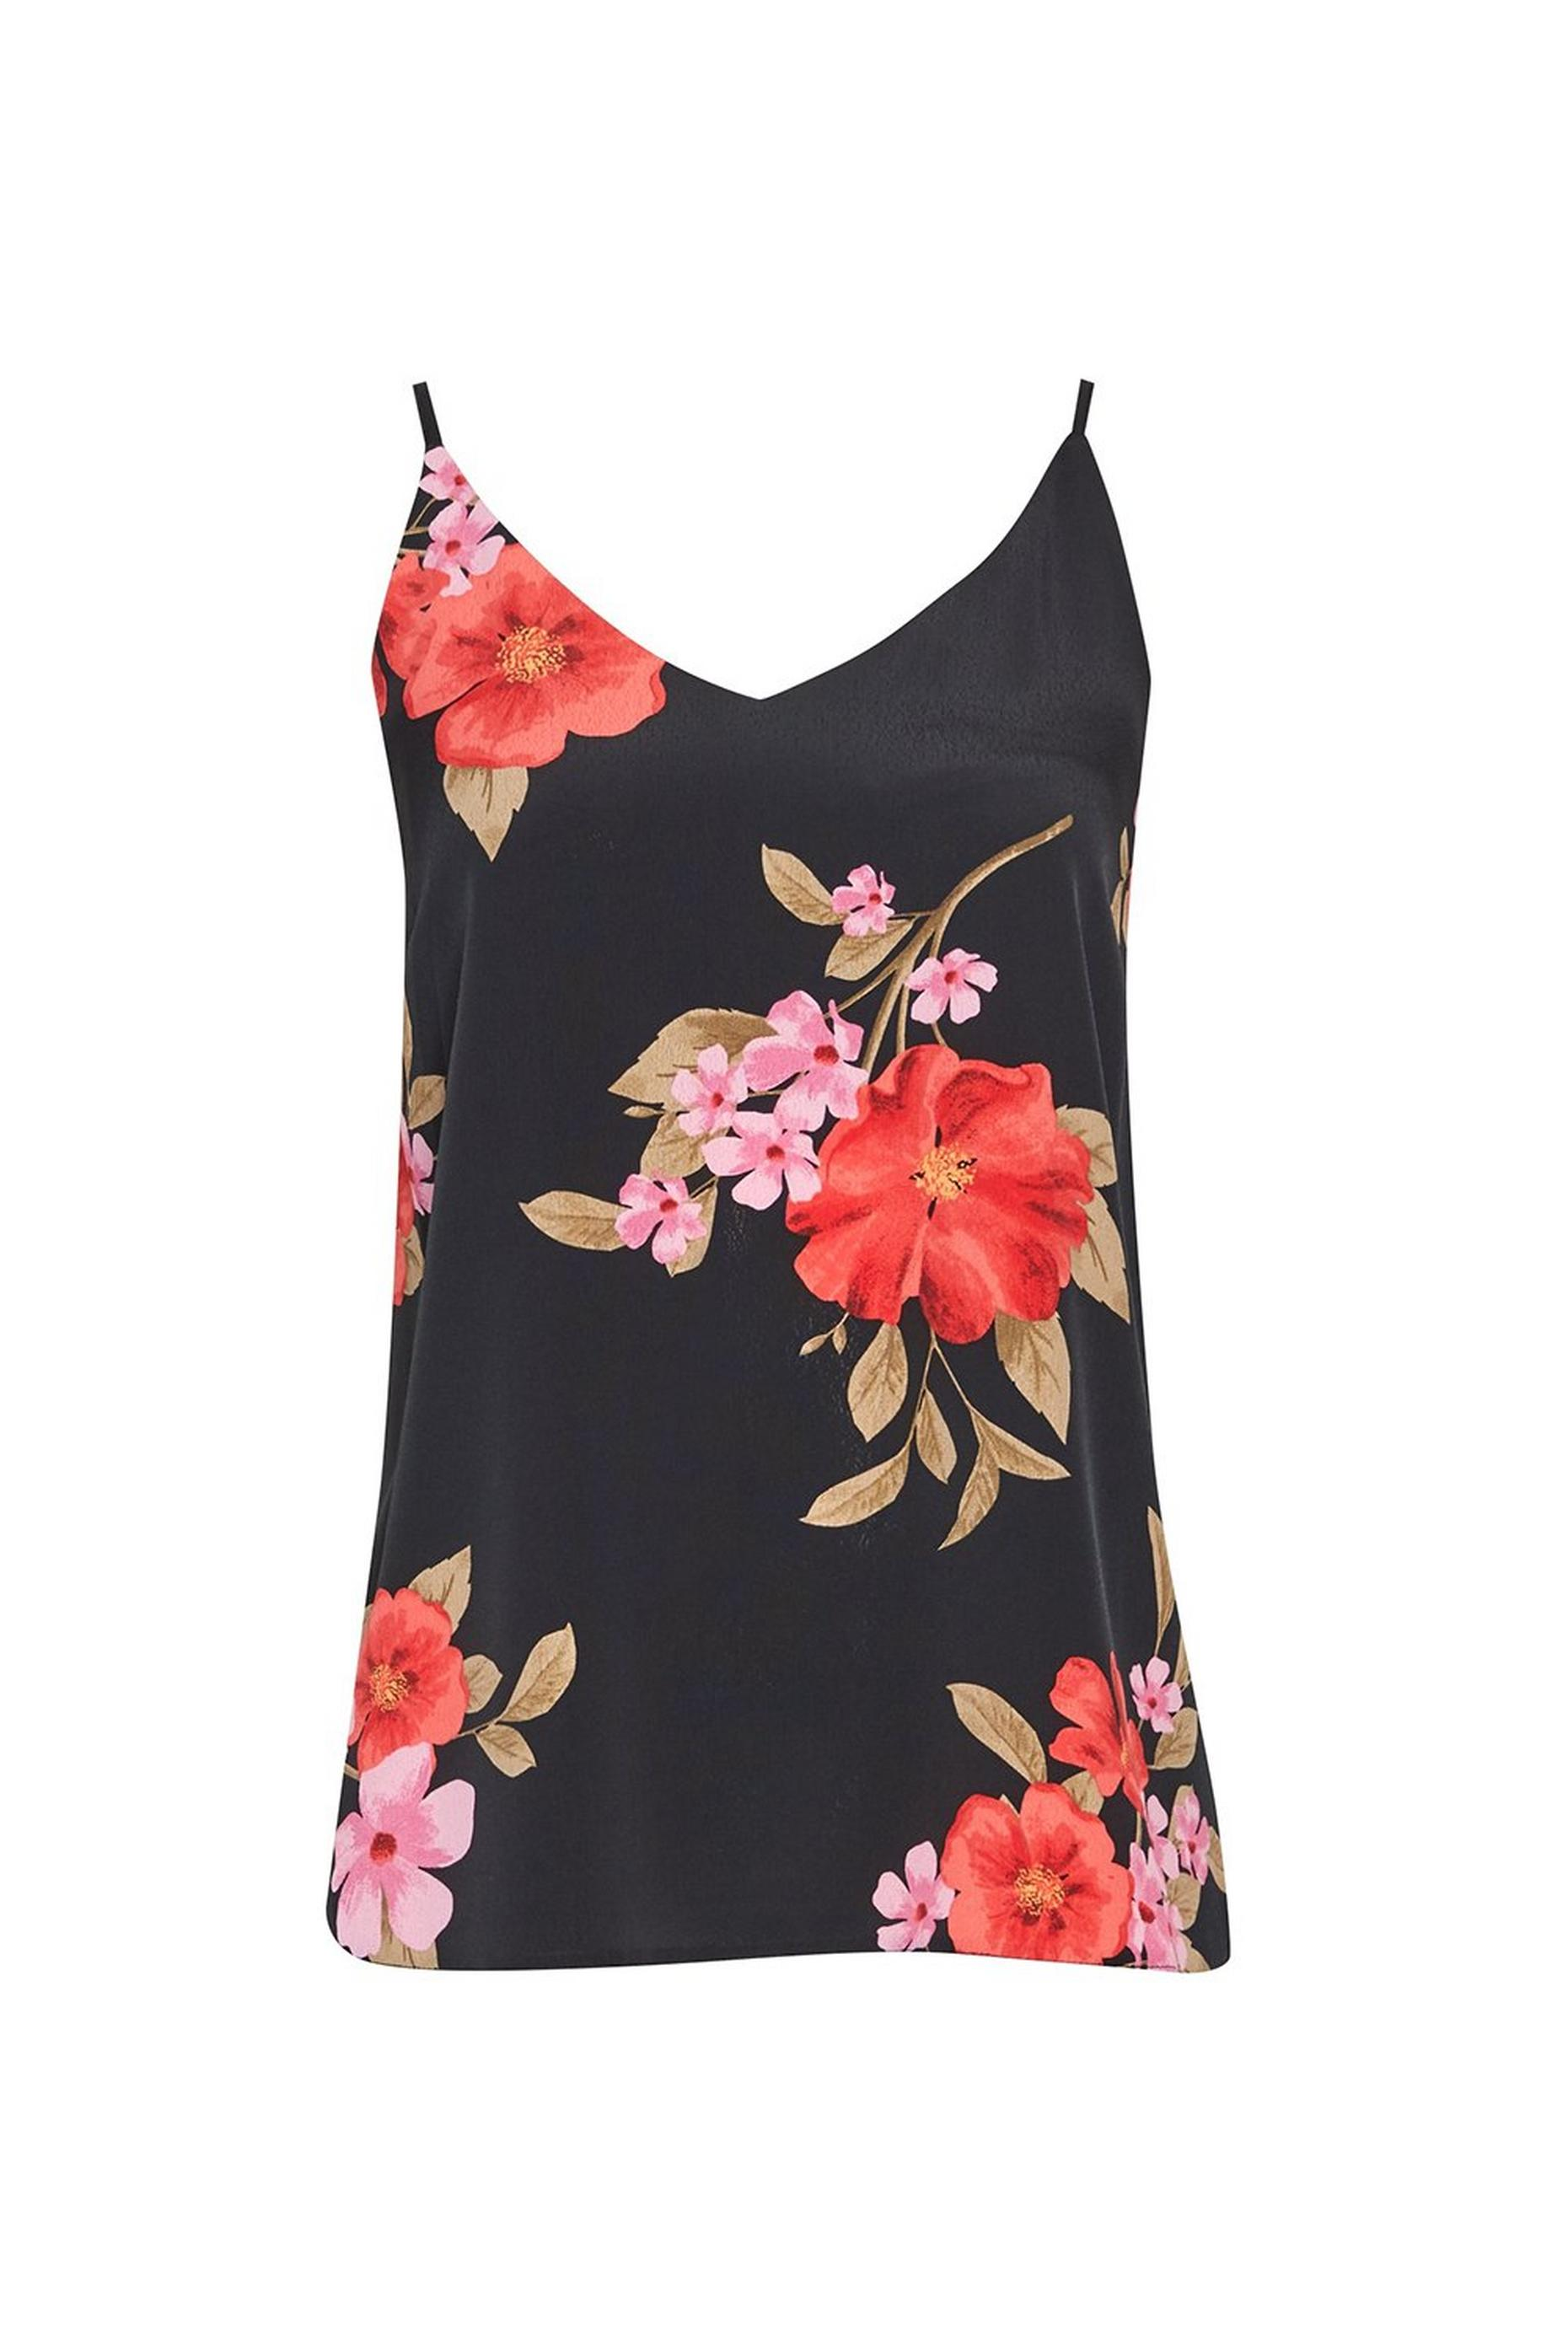 Multi Colour Floral Print Camisole Top